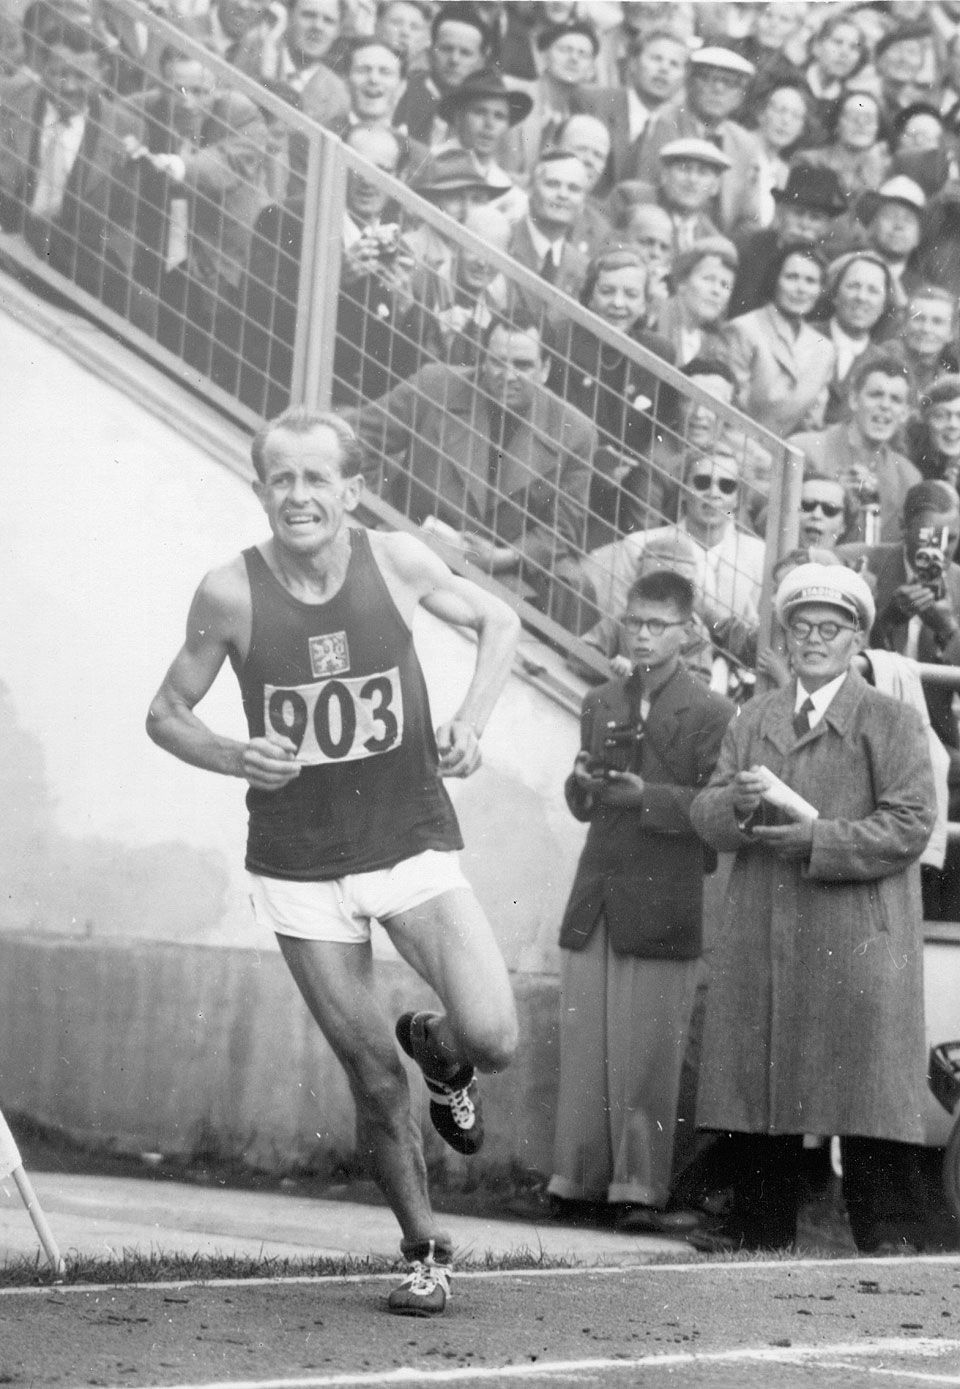 Emil Zátopek, only person to win the 5000m, 10,000m, and